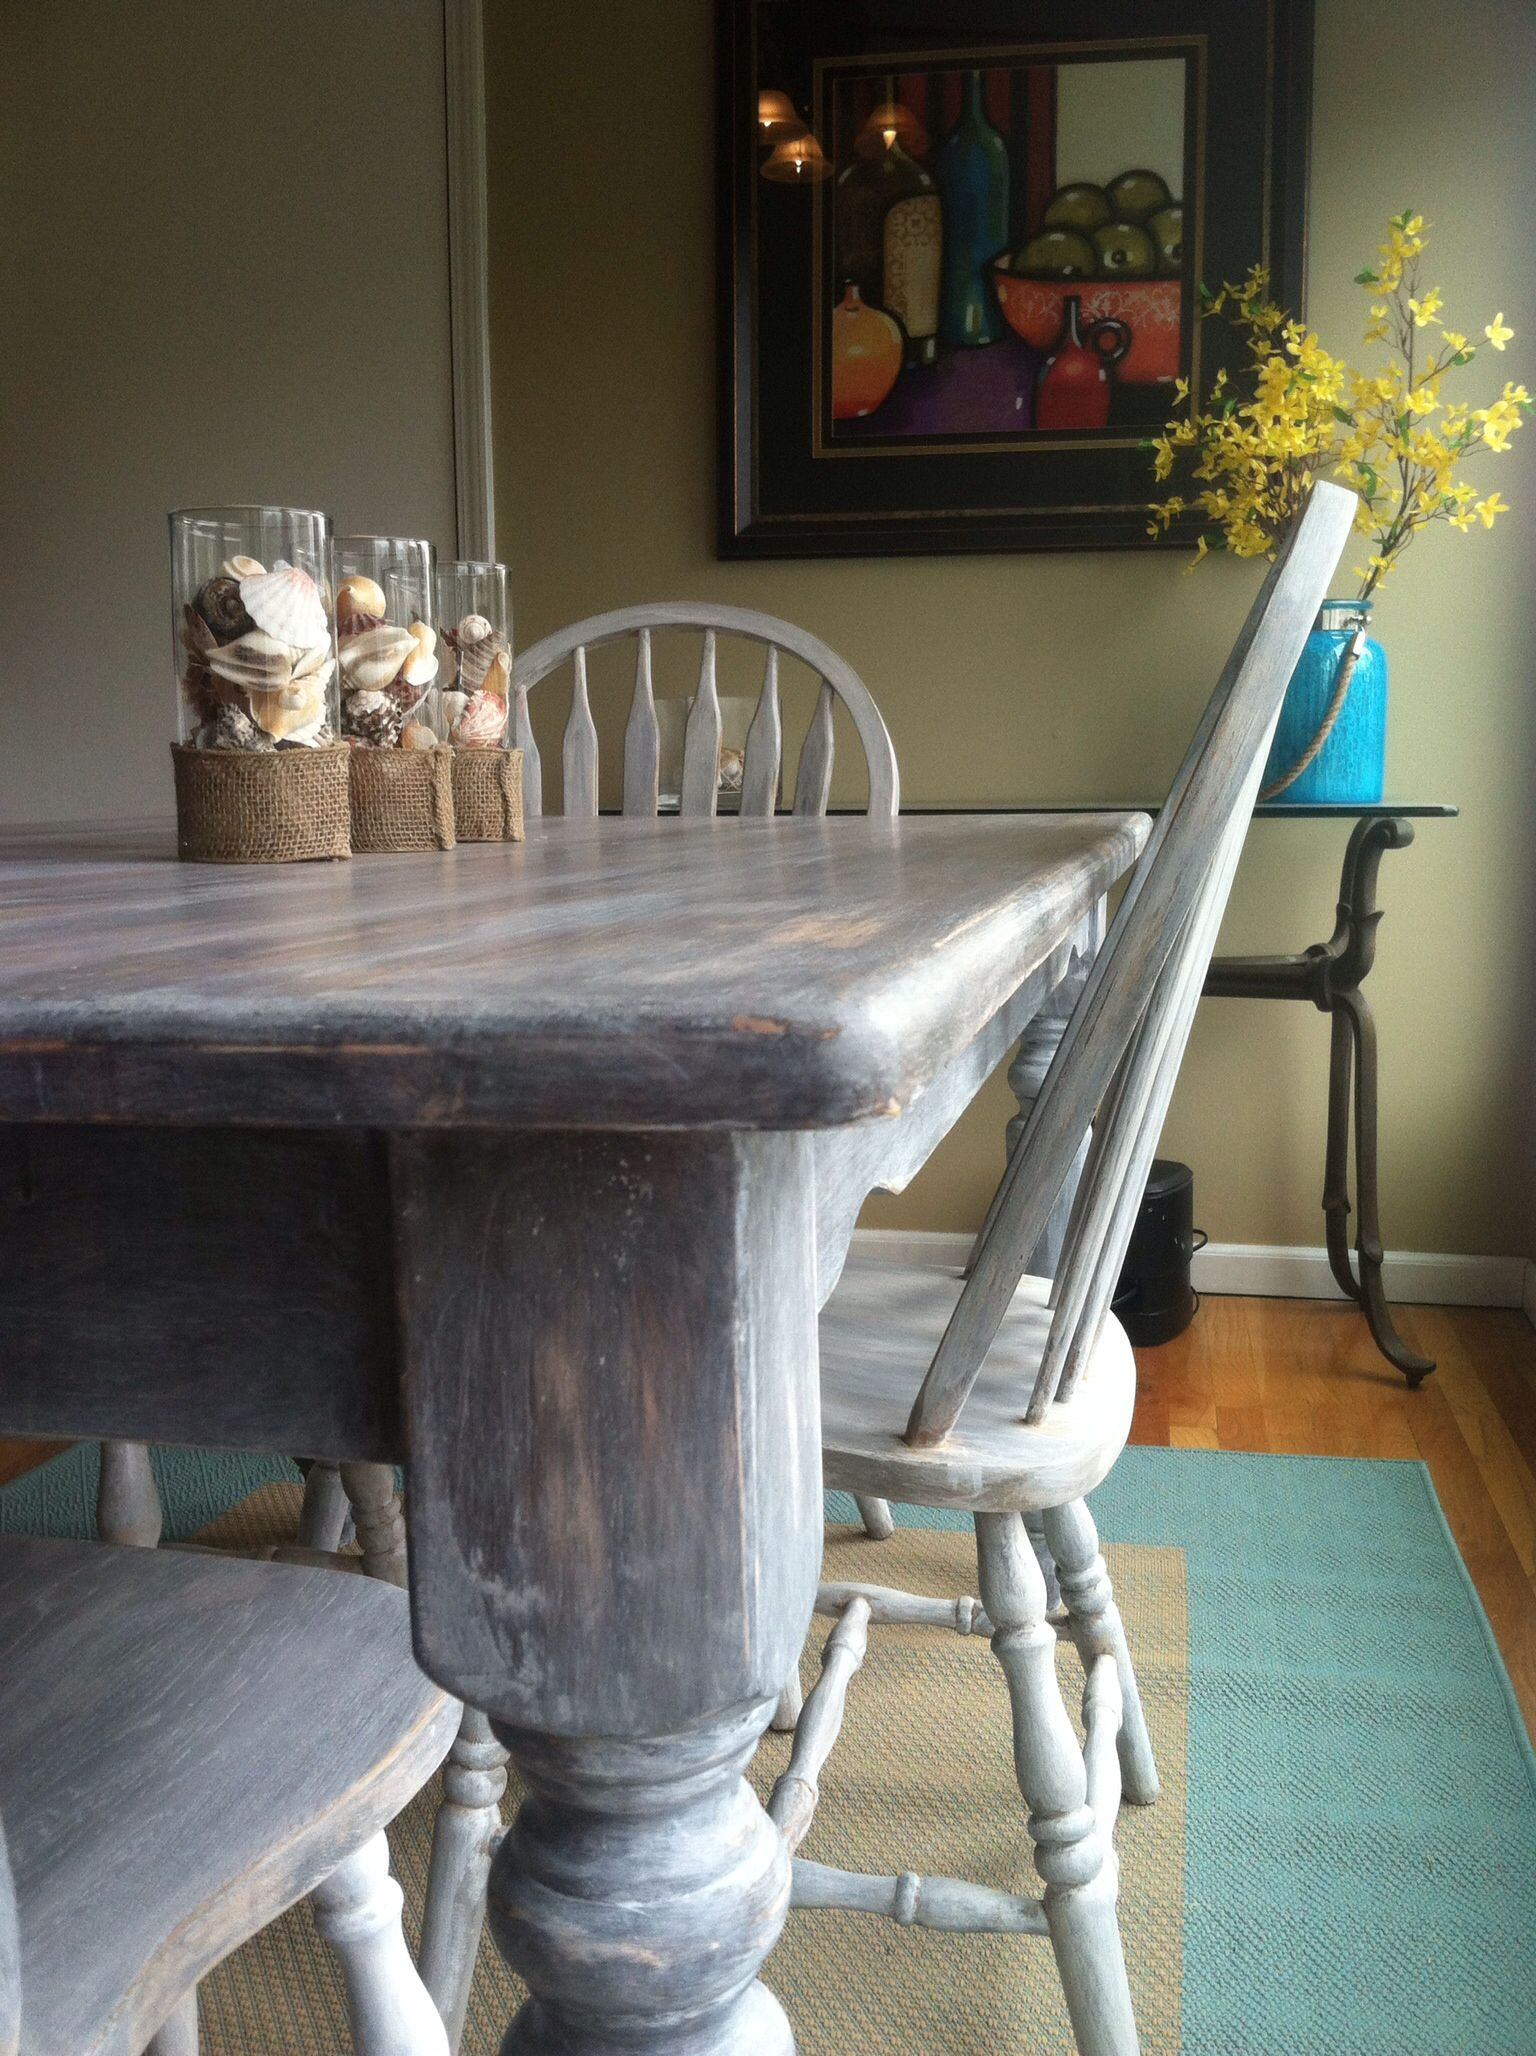 My Refinished 90s Fugly Oak Table And Chairs Are Now Beachy, Fun, And Oh